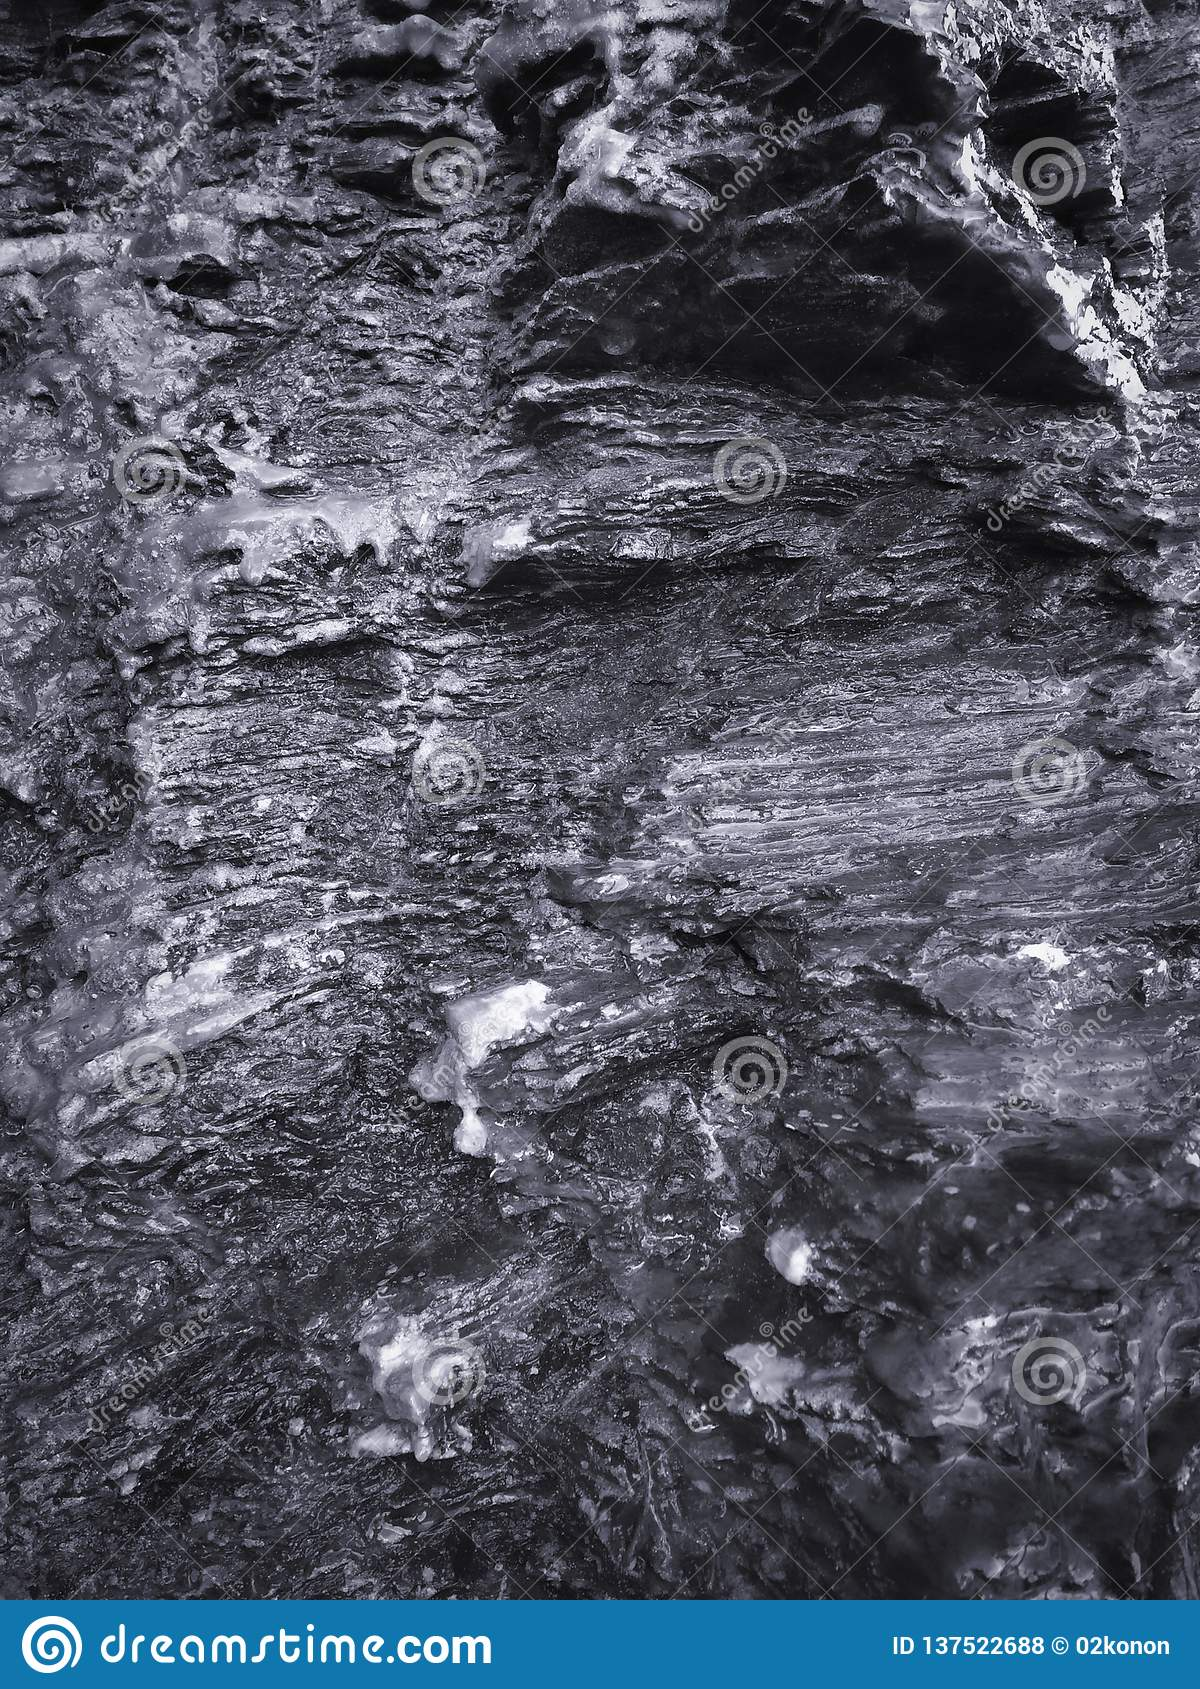 Wet rock, stone formations as background